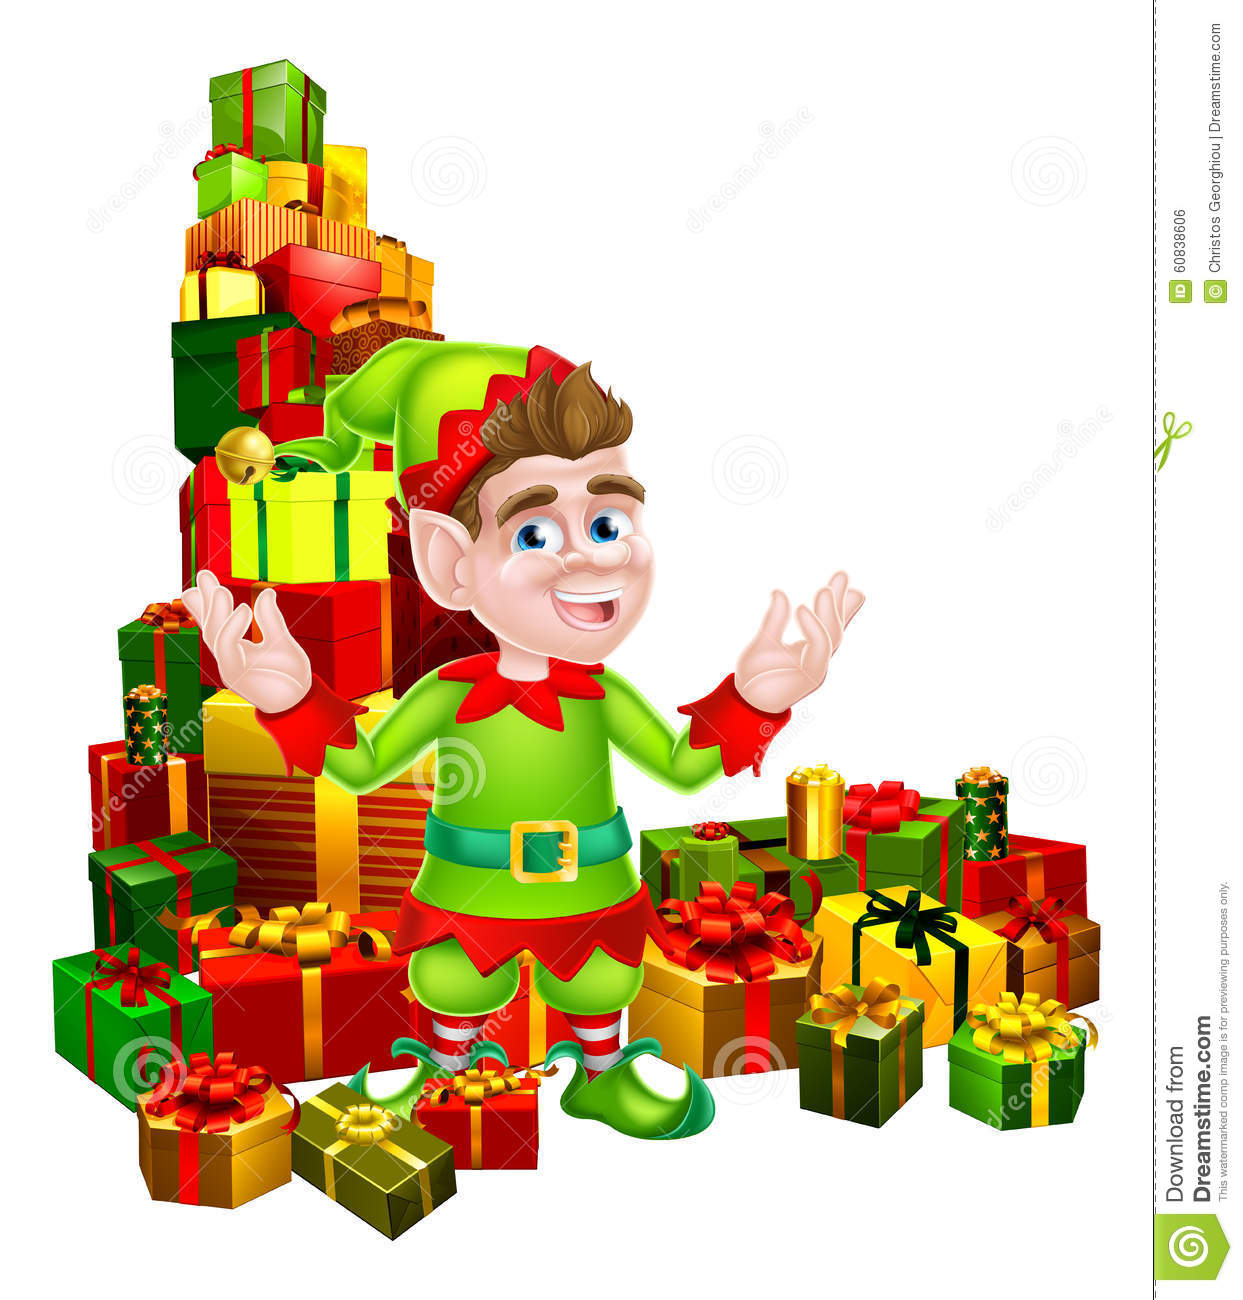 Christmas Toys Cartoon : Cartoon gifts elf stock vector image of helper holiday